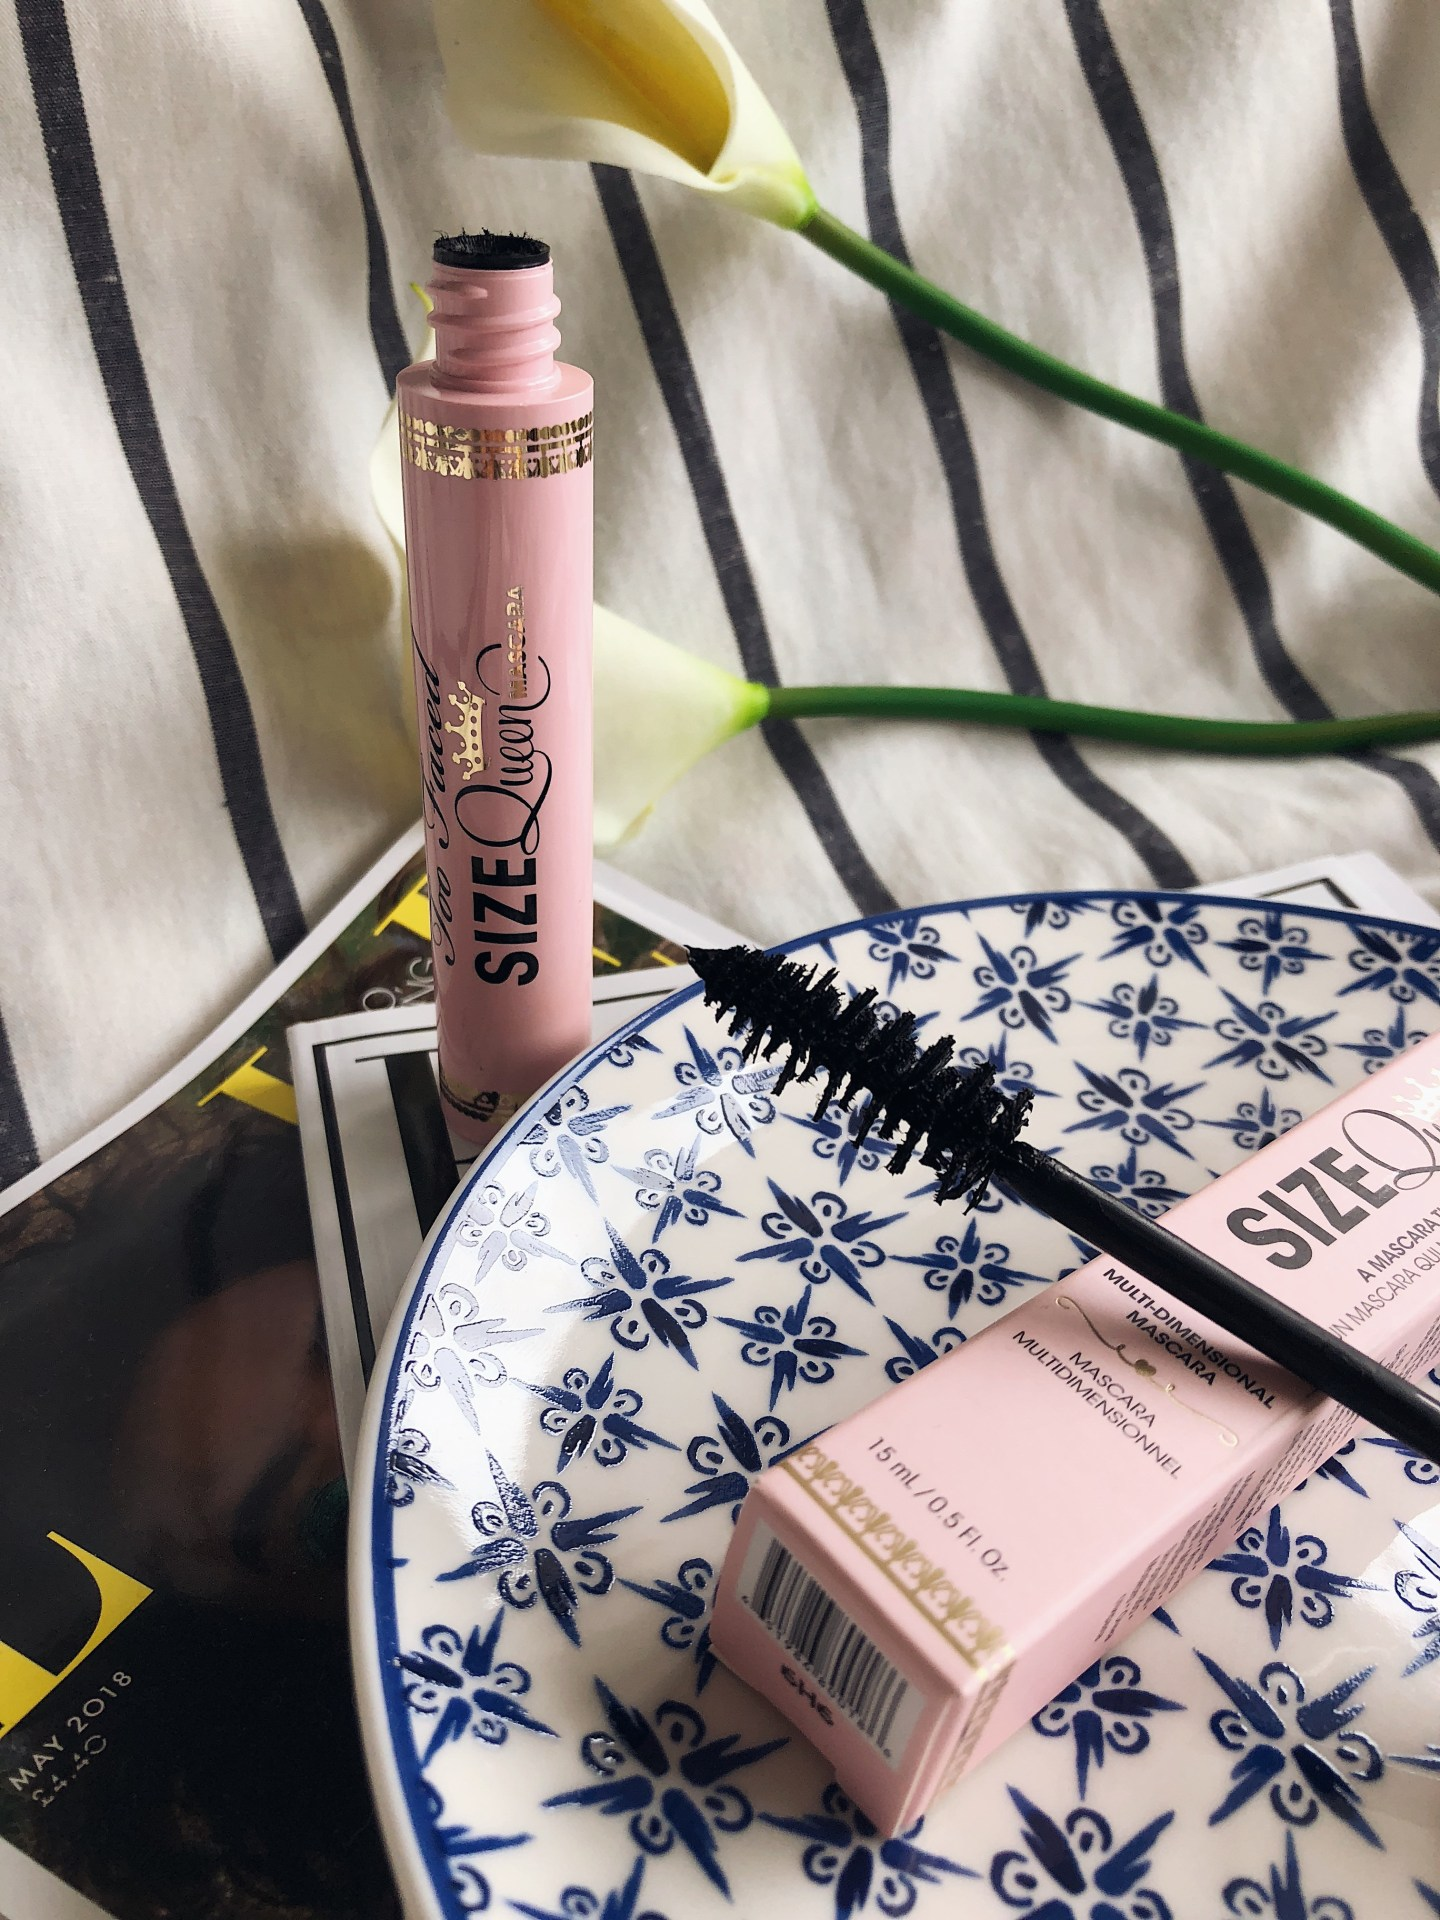 May 2018 Look Incredible Deluxe Subscription Box - Too Faced Queen Sized Mascara